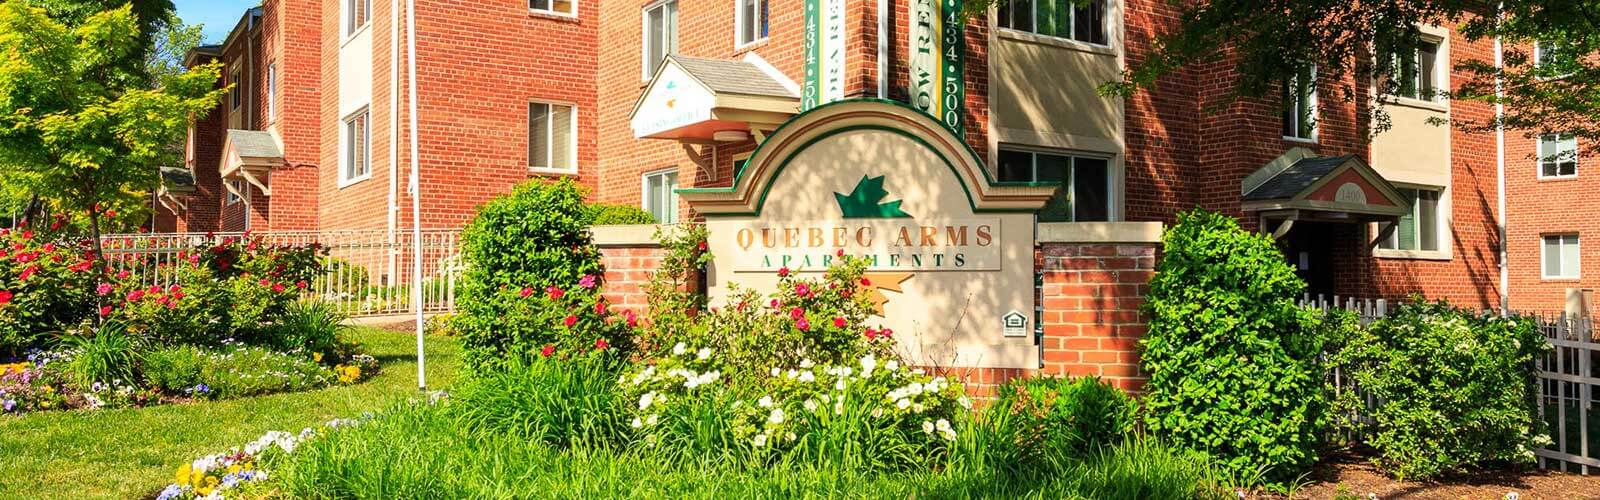 Quebec Arms apartments Welcome Sign